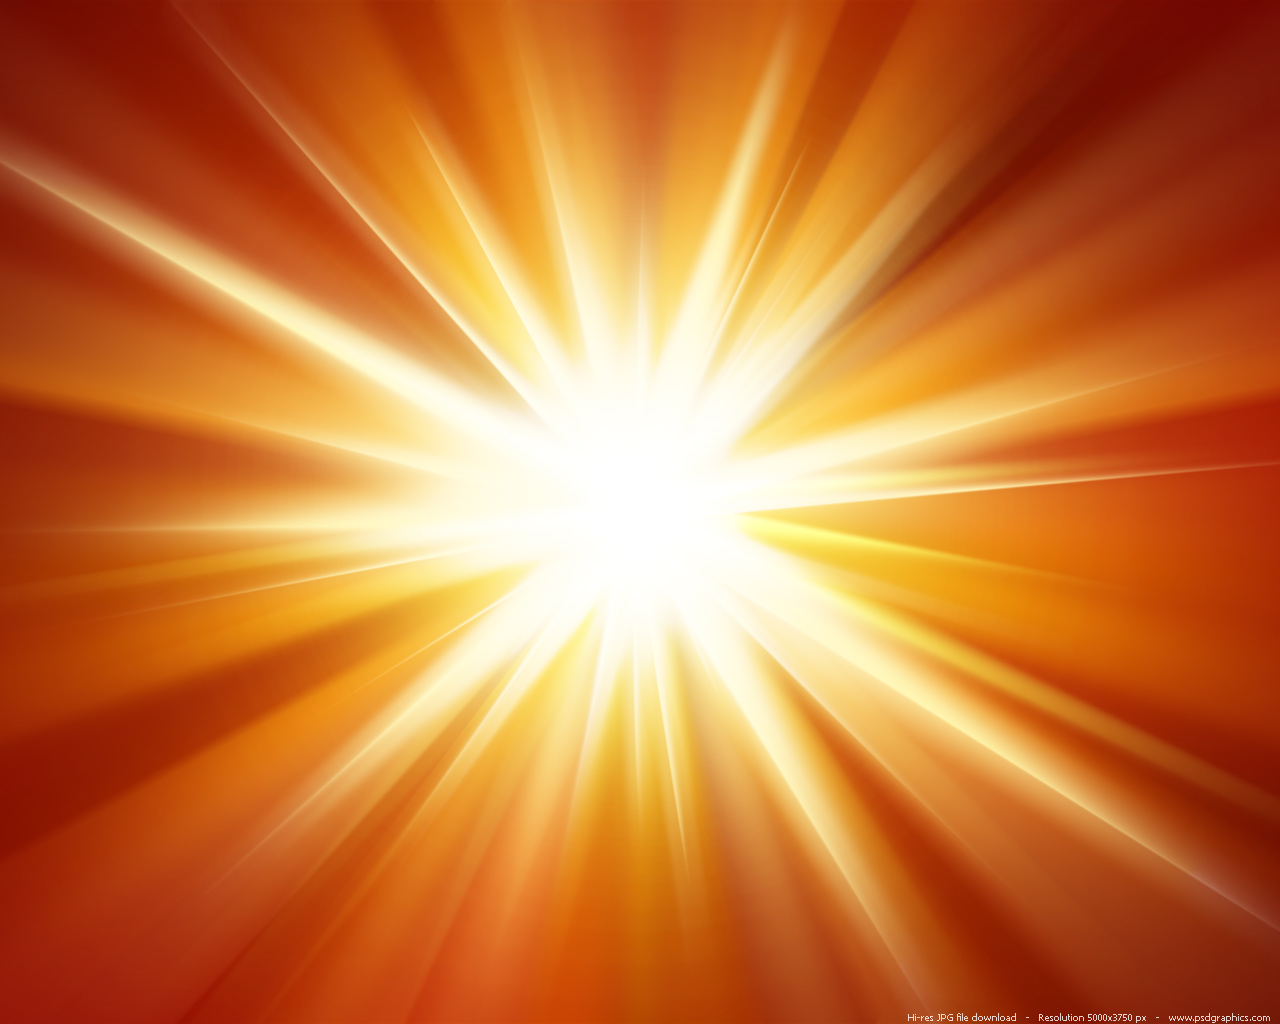 Orange light burst background